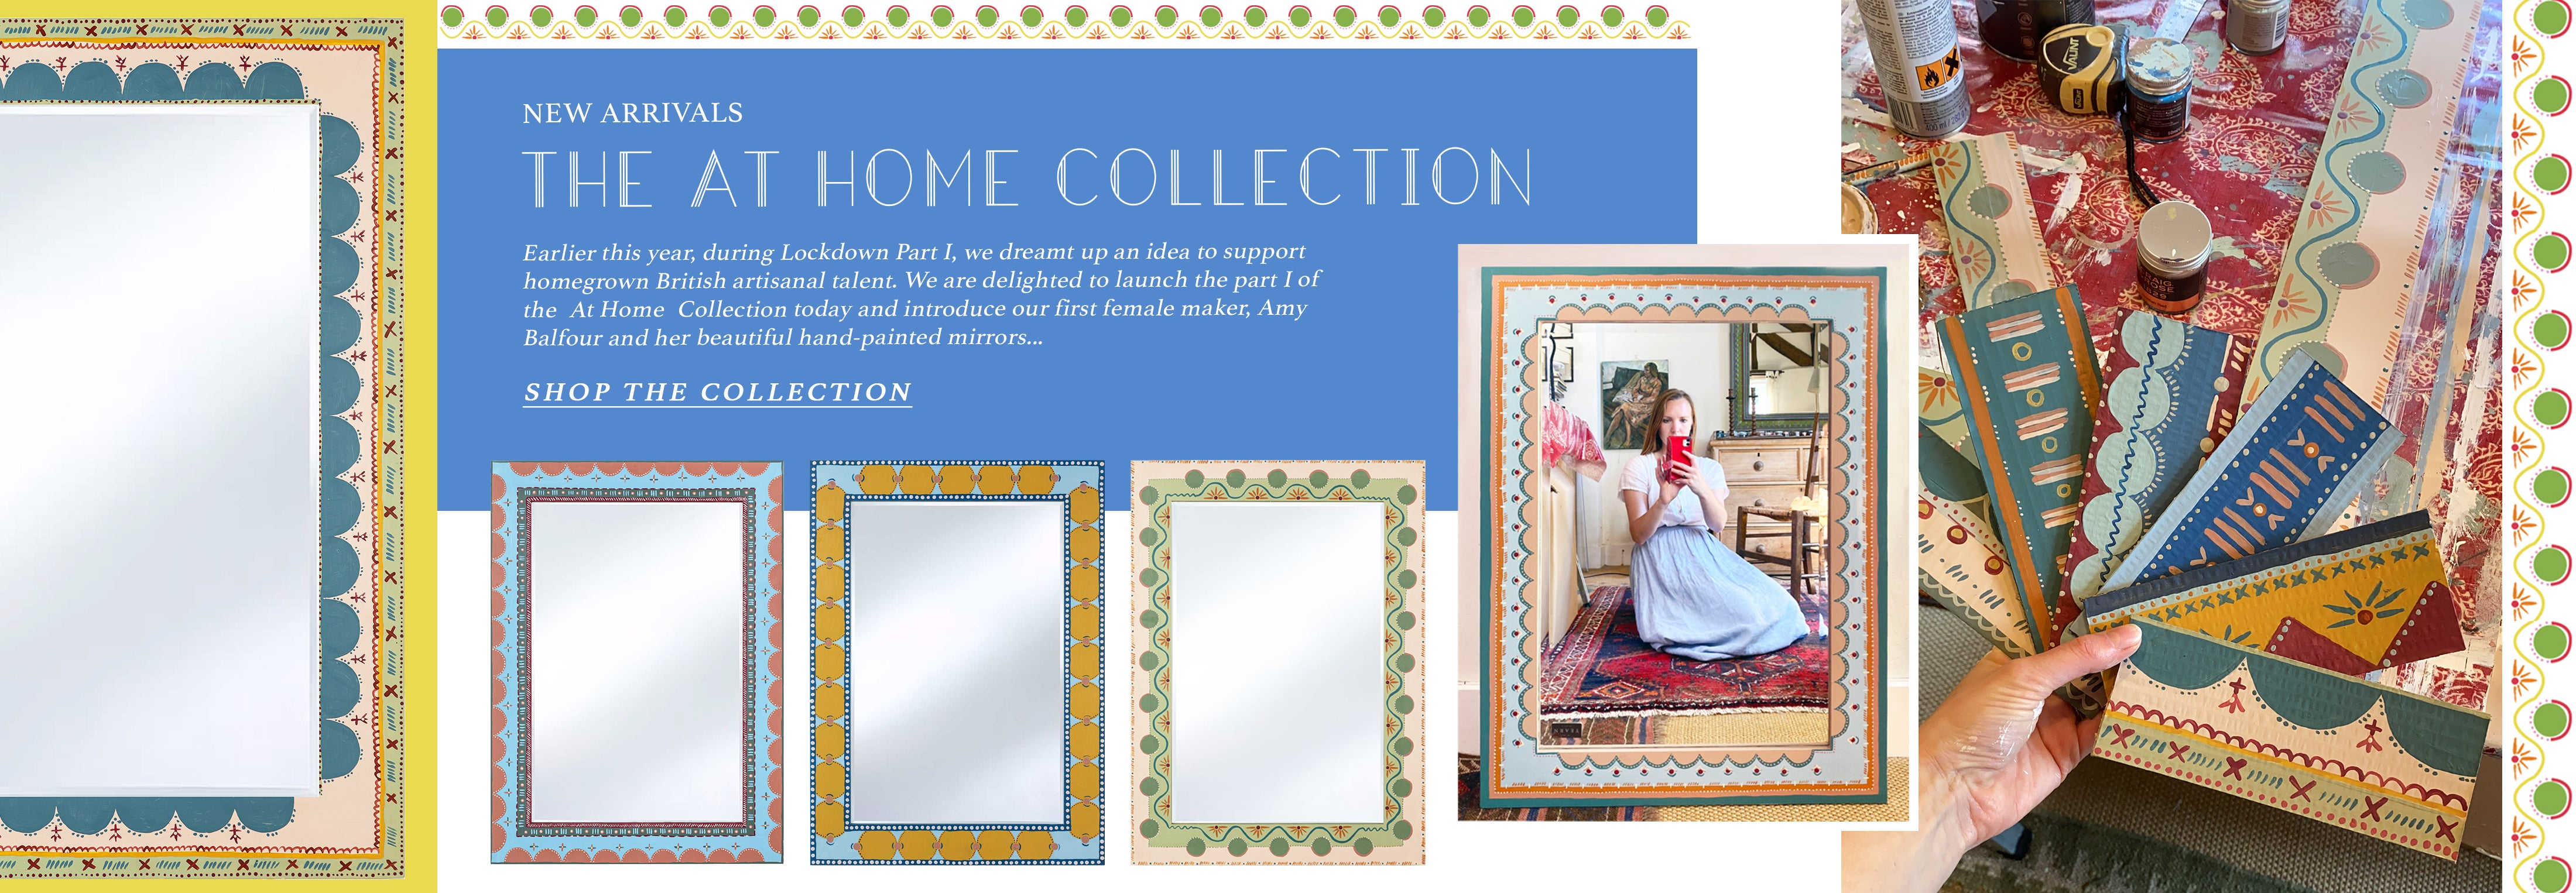 Amy Balfour X Wicklewood colourful hand-painted mirrors inspired by The Bloomsbury Group